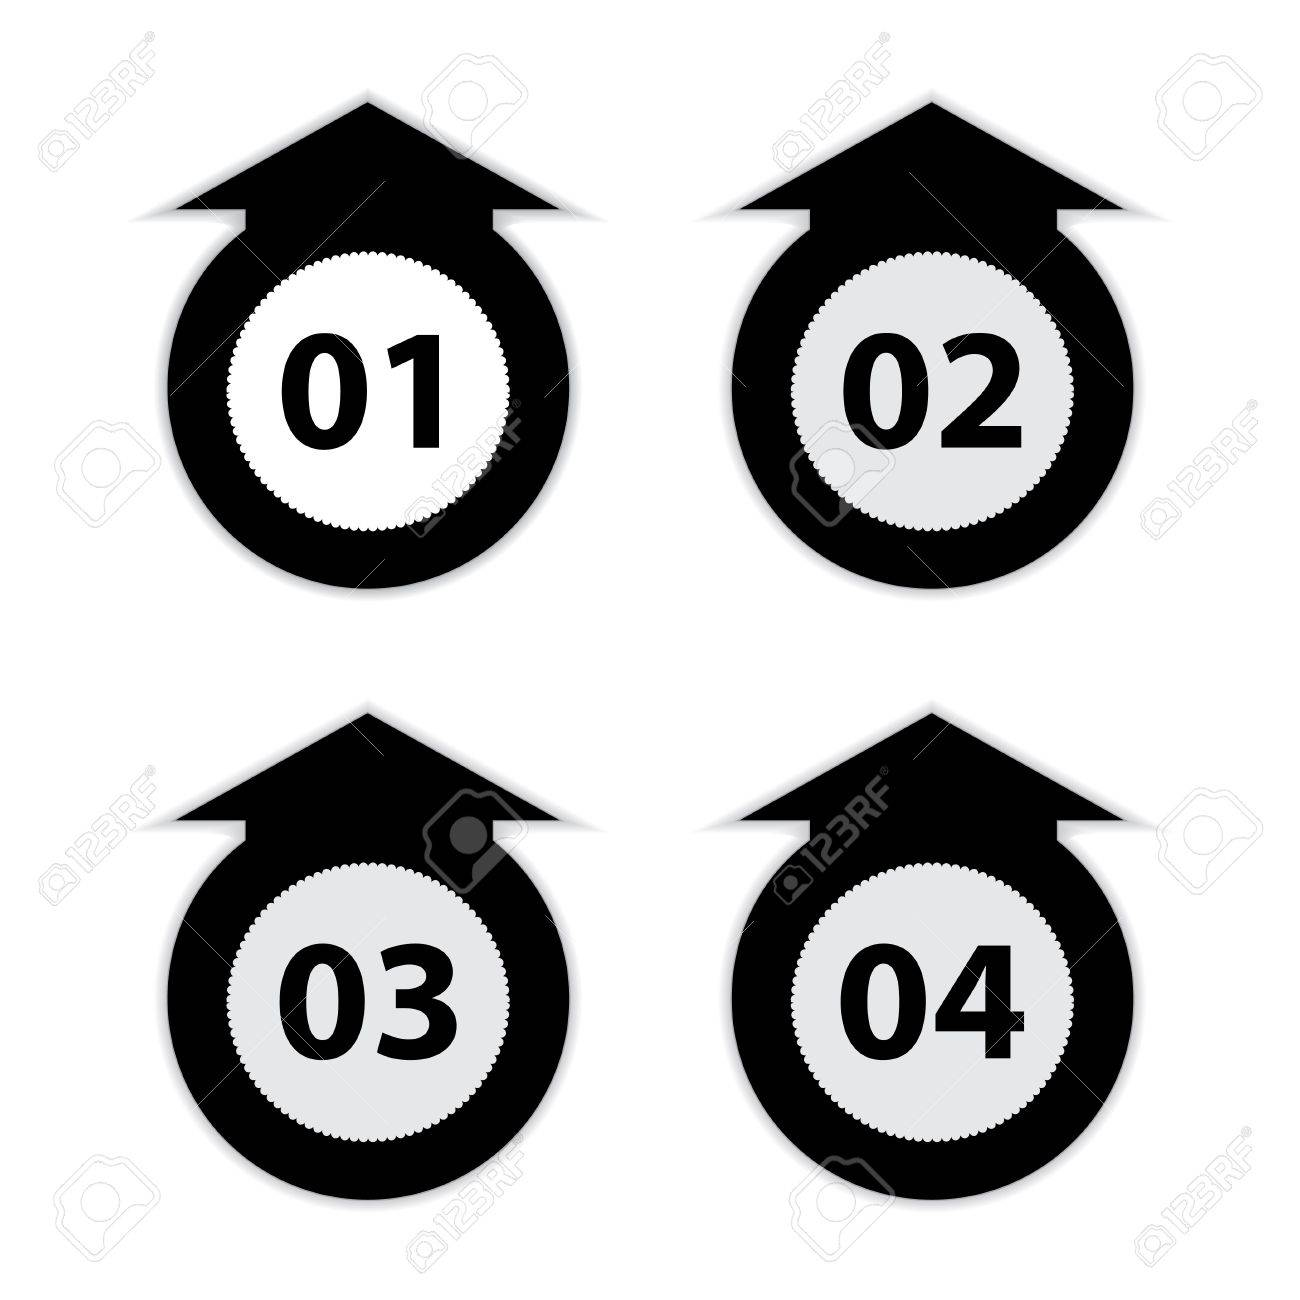 arrow labels with numbers, black and white vector illustration Stock Vector - 17773619